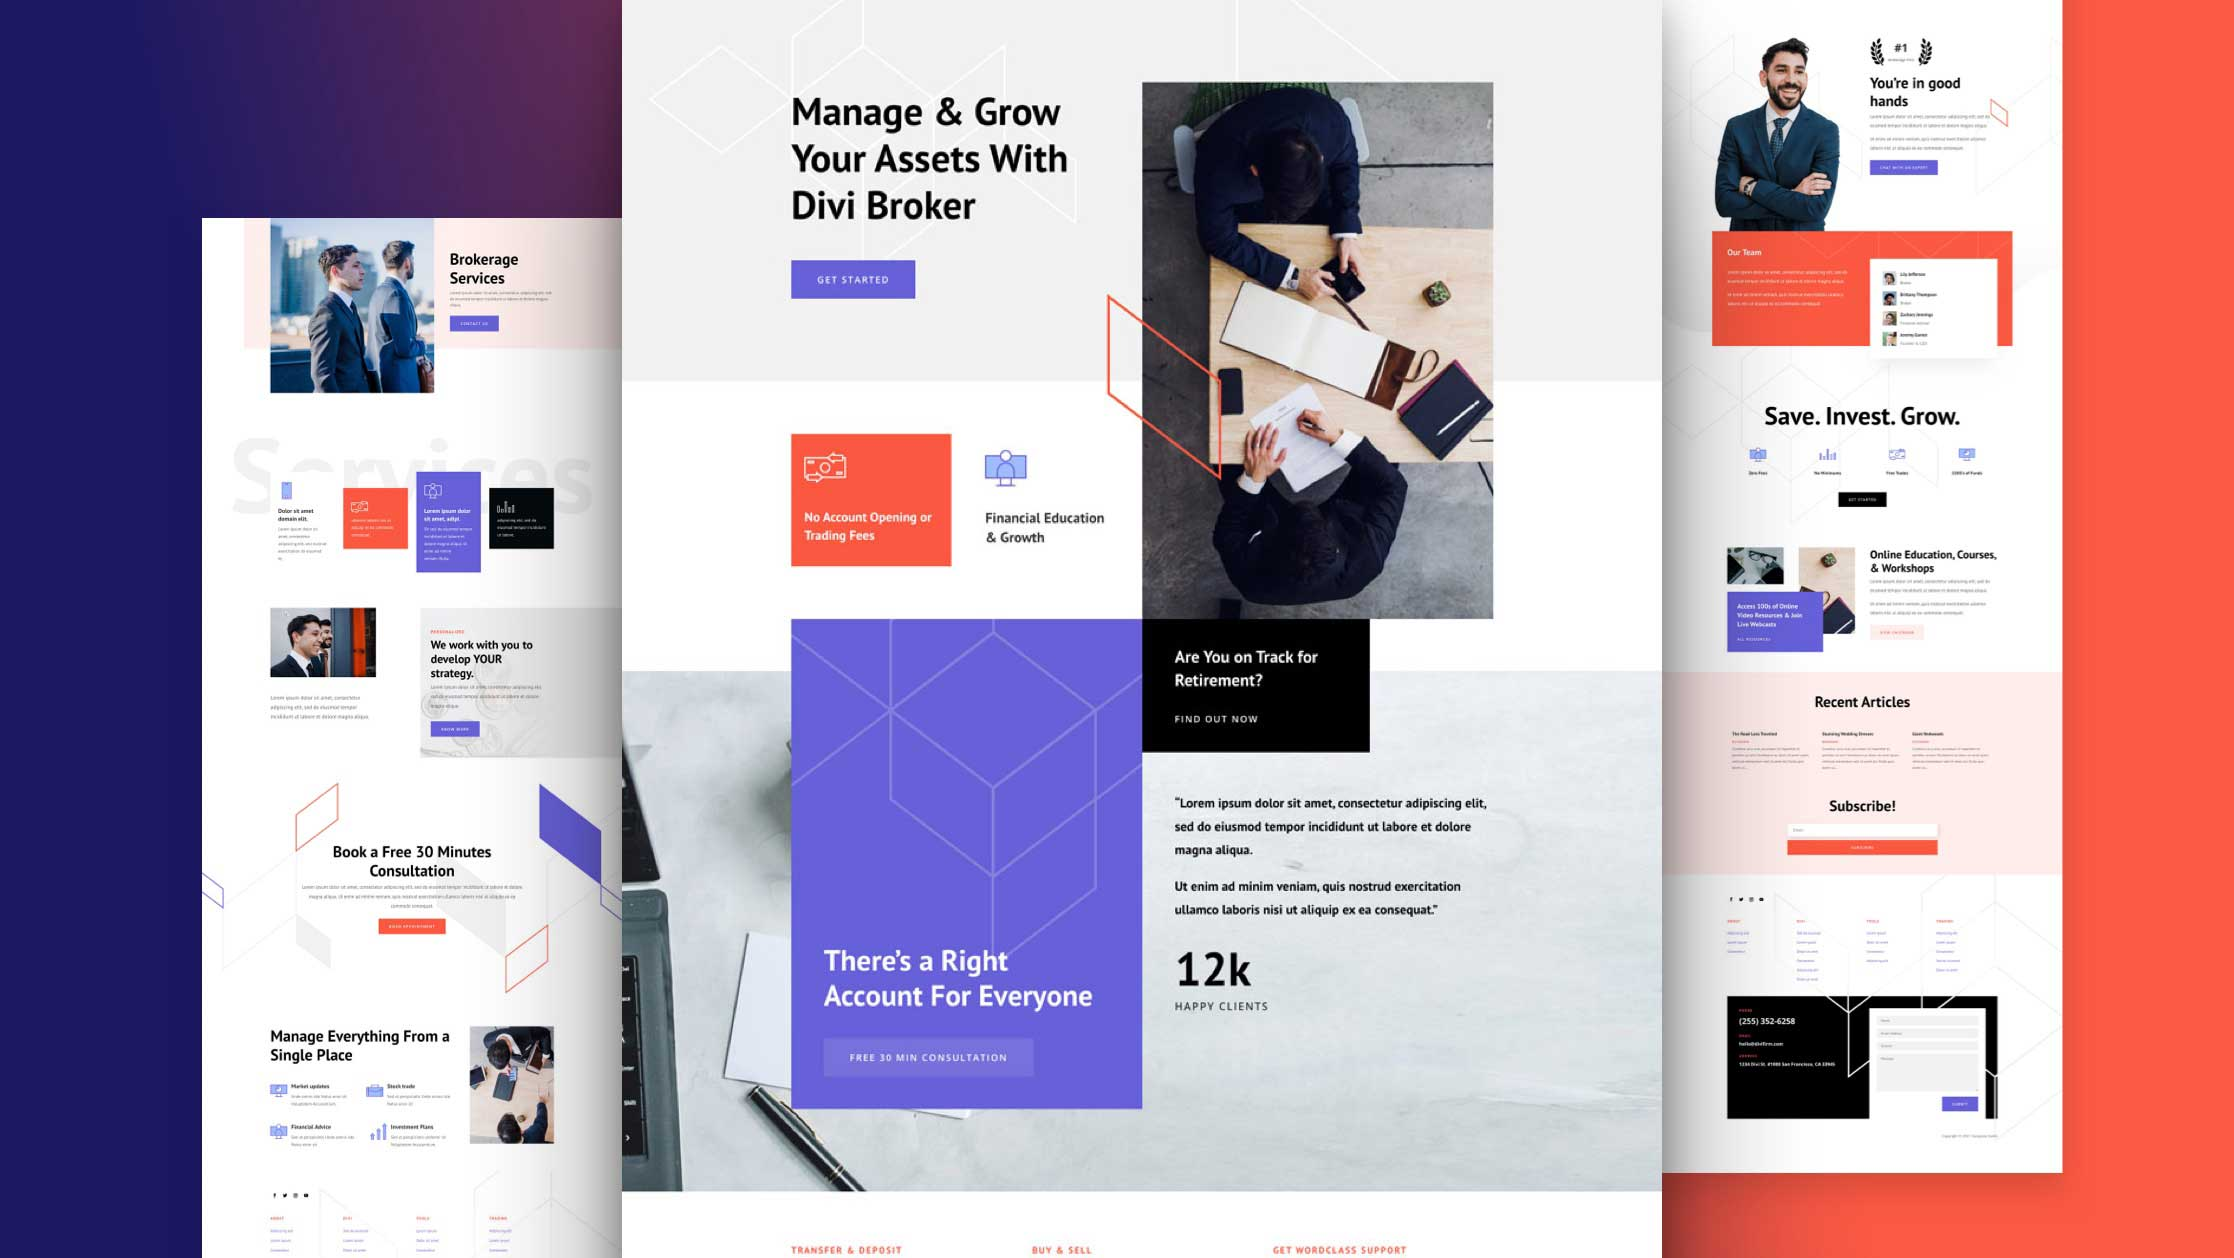 Get a FREE Brokerage Firm Layout Pack for Divi